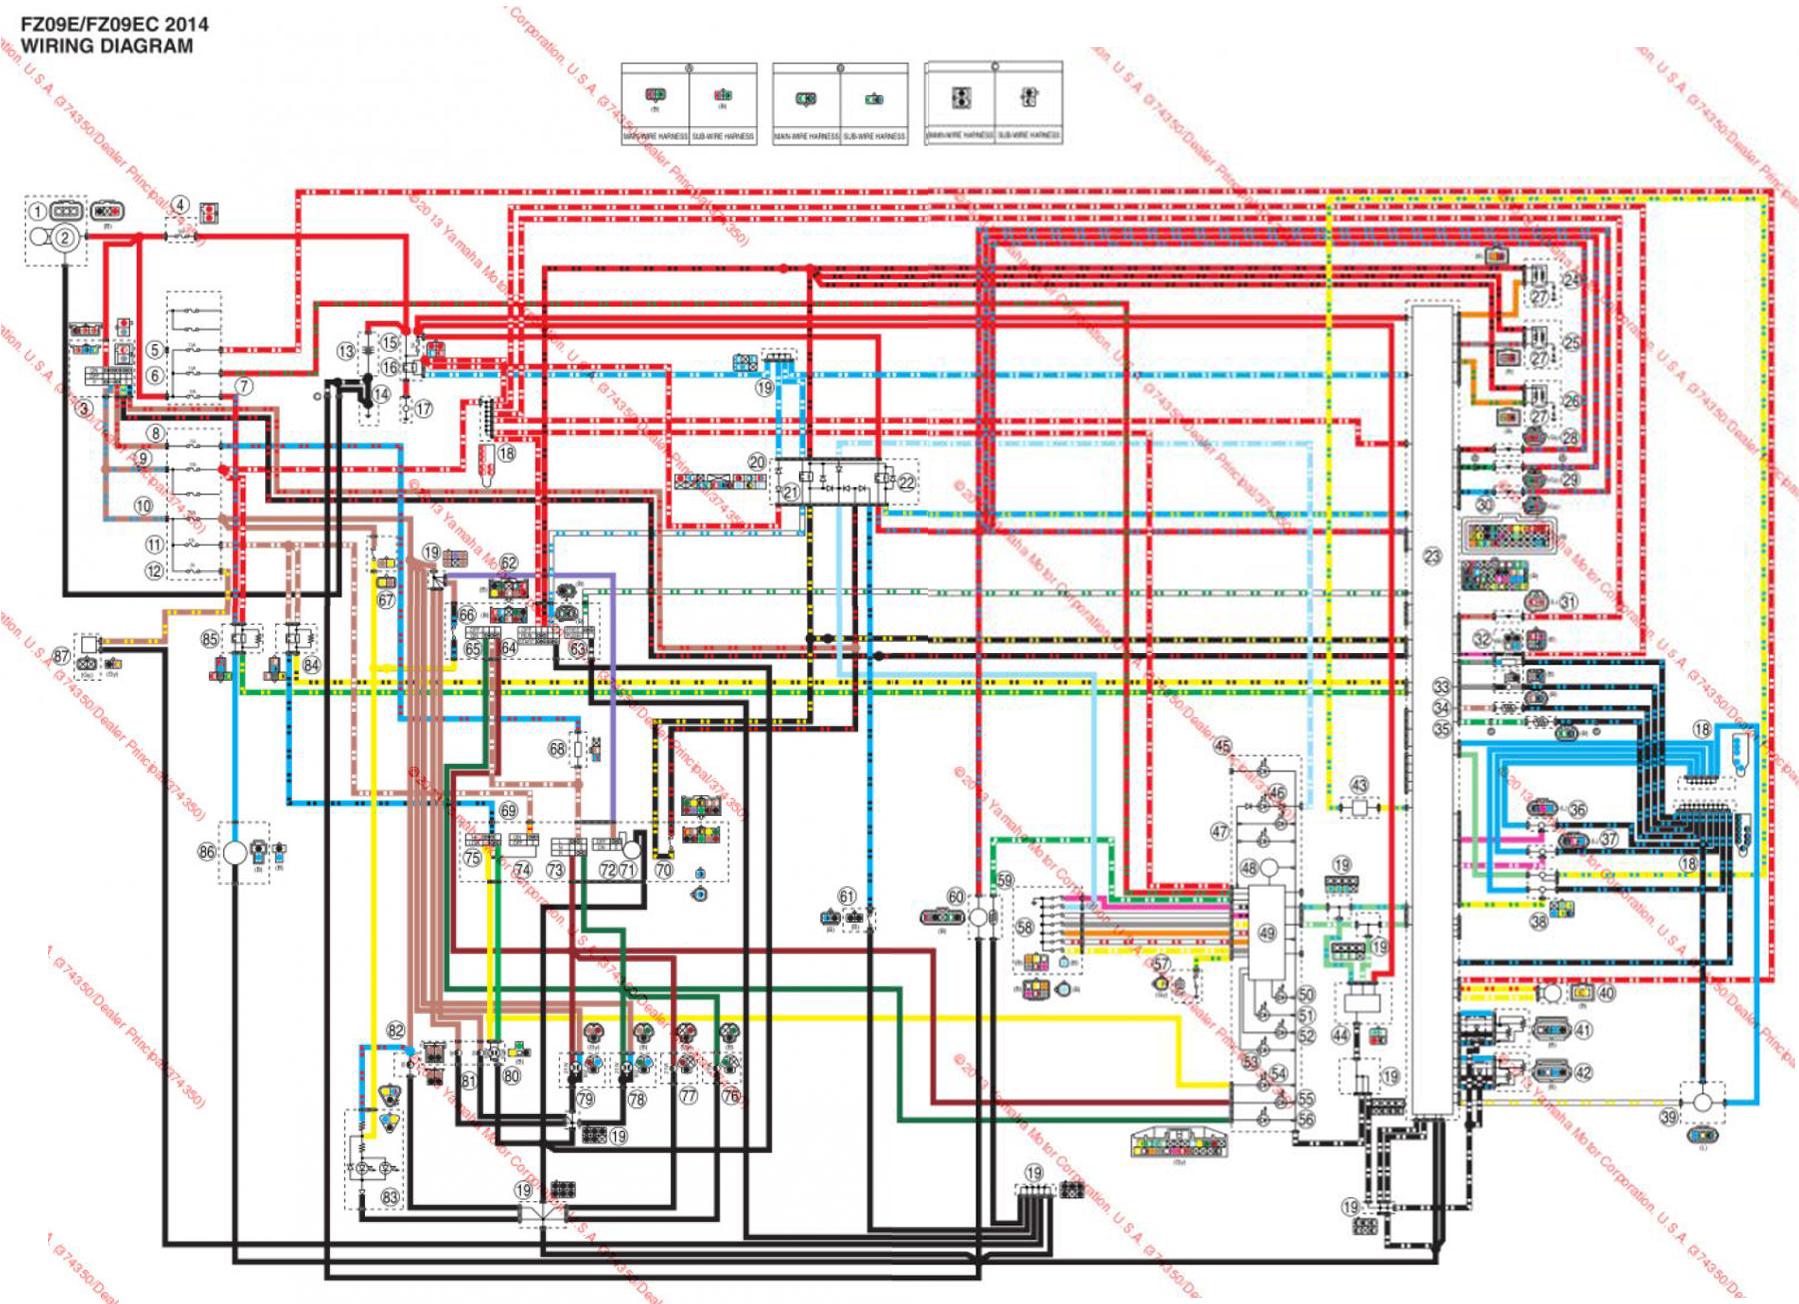 wiring diagram yamaha r3 with Yamaha Fz 07 Wiring Diagram on 1996 besides Yzf R3 Headlight Projector Wiring Diagrams likewise 7C 7C  skuteryostrow pl 7Cstrona 7Cimages 7Cdownload 7Cinstalacje elektr Mz kolor 7Ces175 250 1 also Yamaha Yzf R3 Demo Day besides Tech Tips.